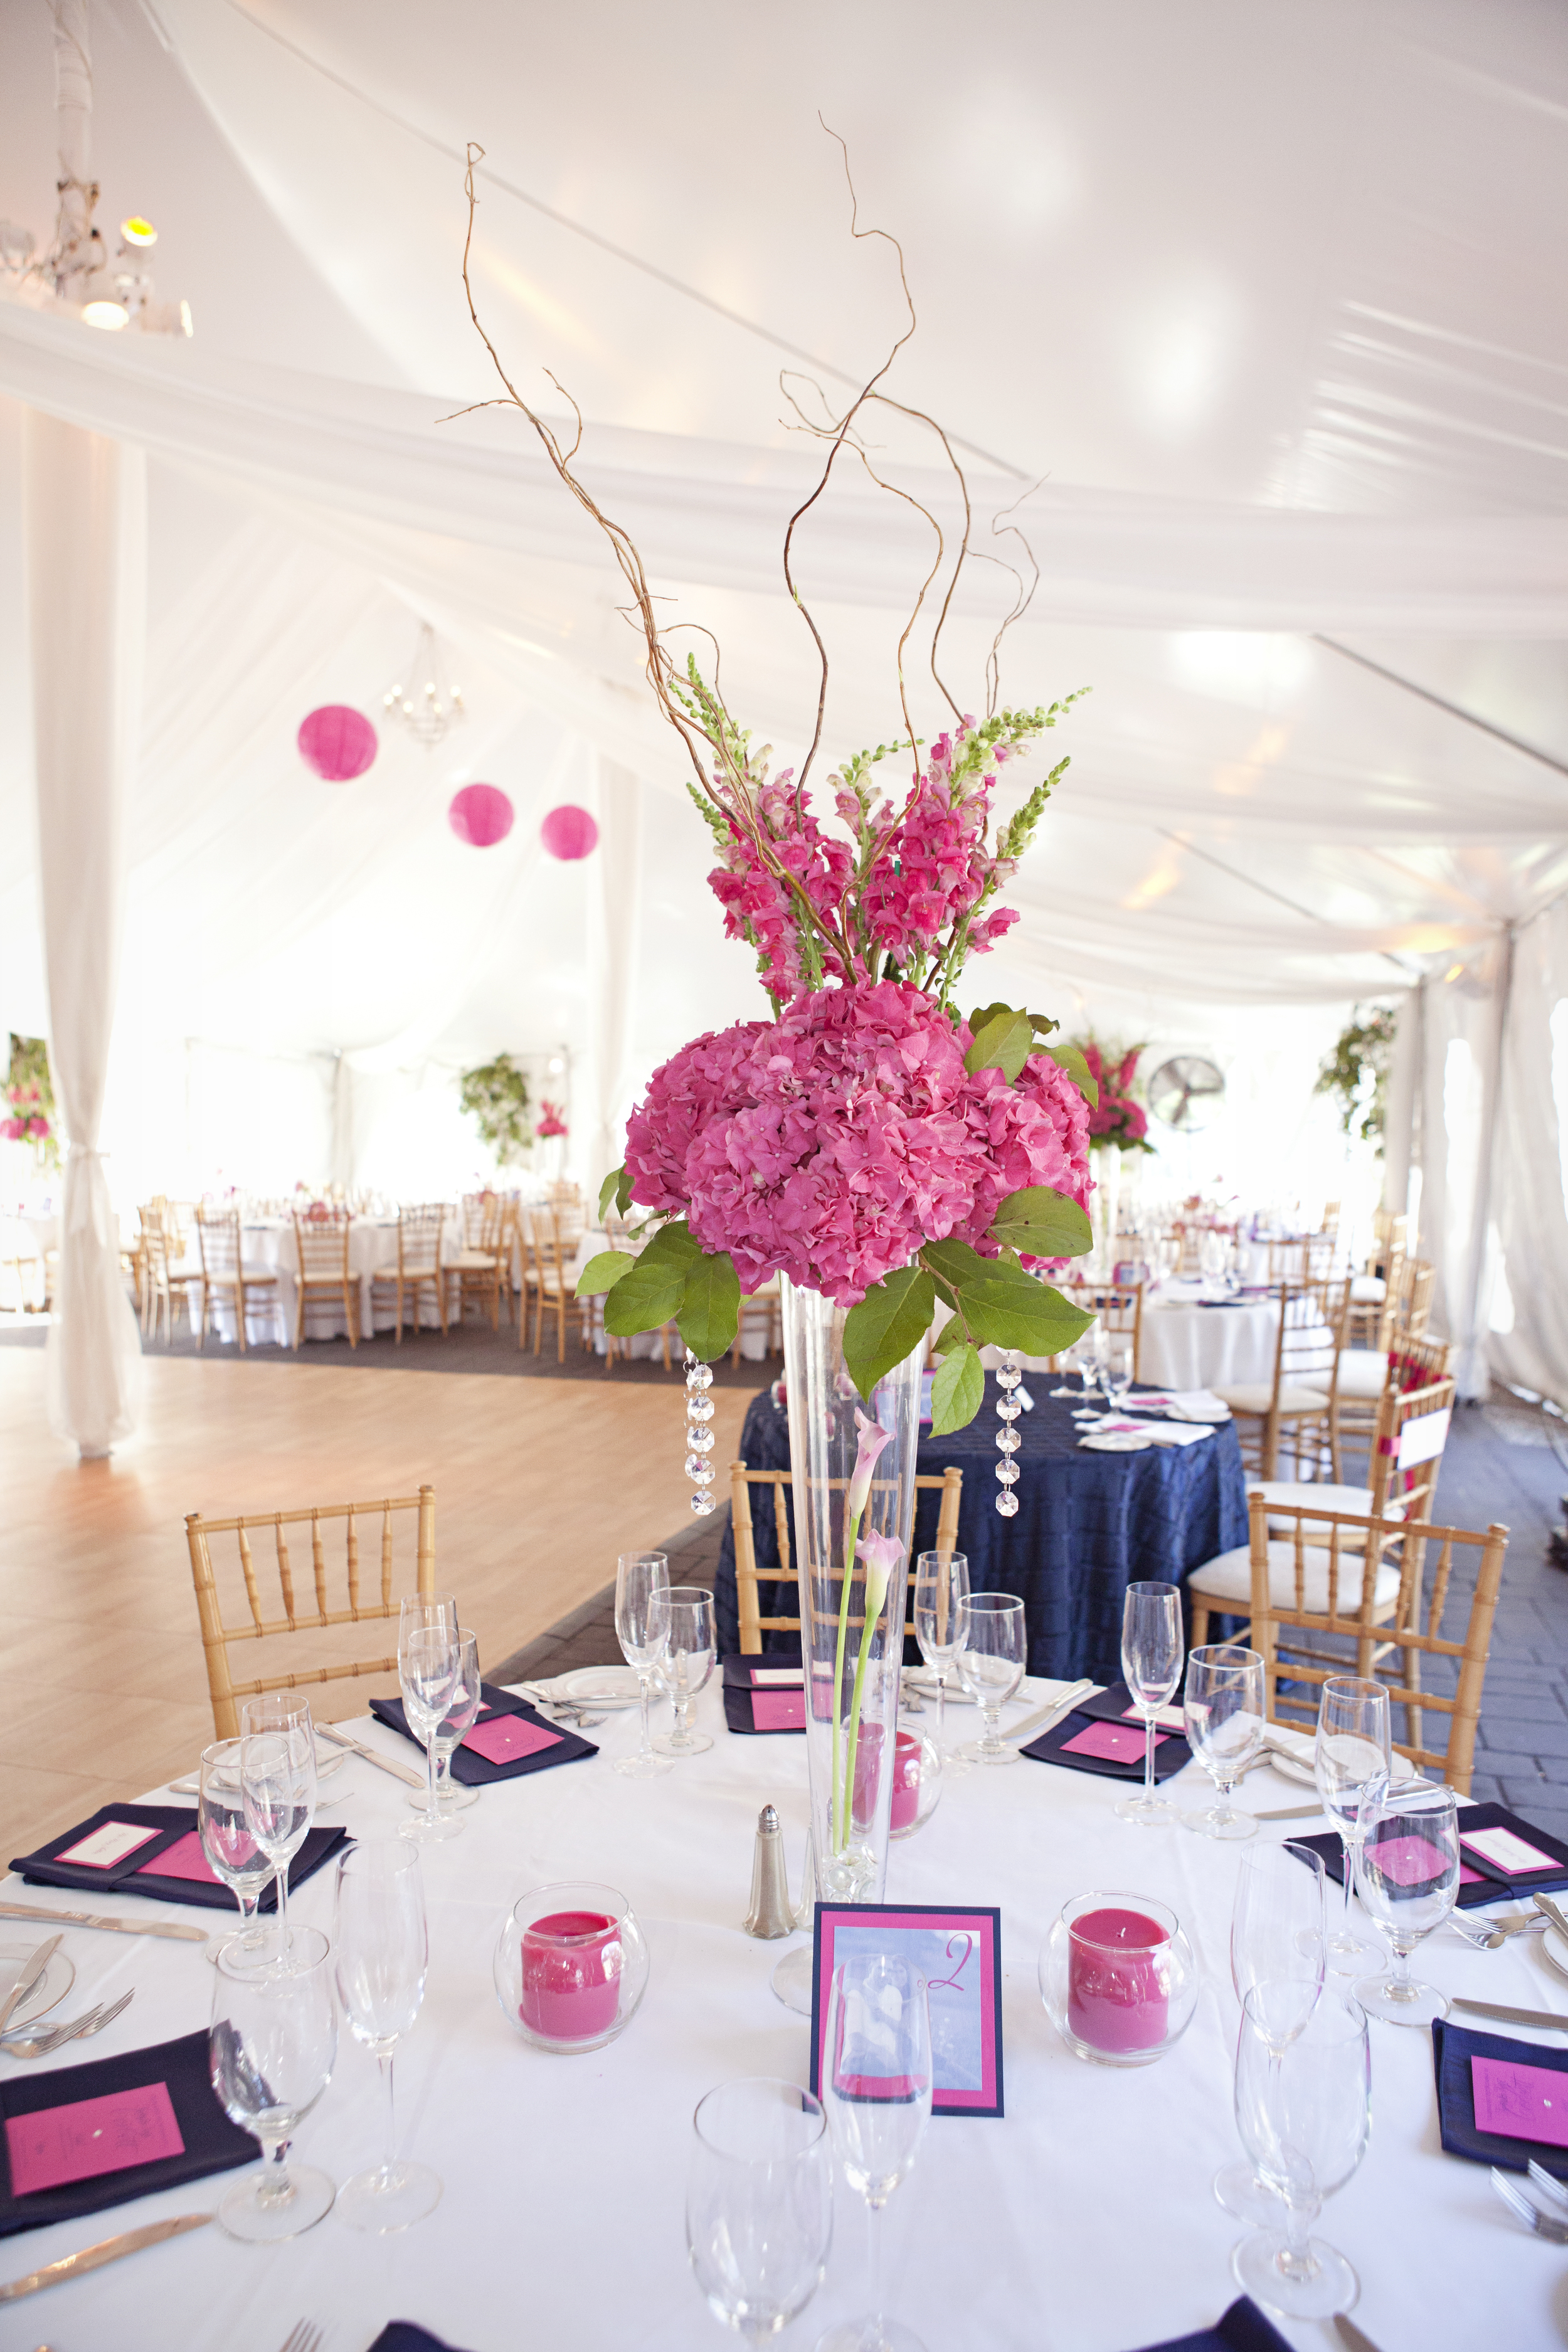 High Centerpieces featuring snapdragons, curly willow and hydrangea. Navy bengaline napkins and fuchsia menu cards finish the reception tables with a pop of color.